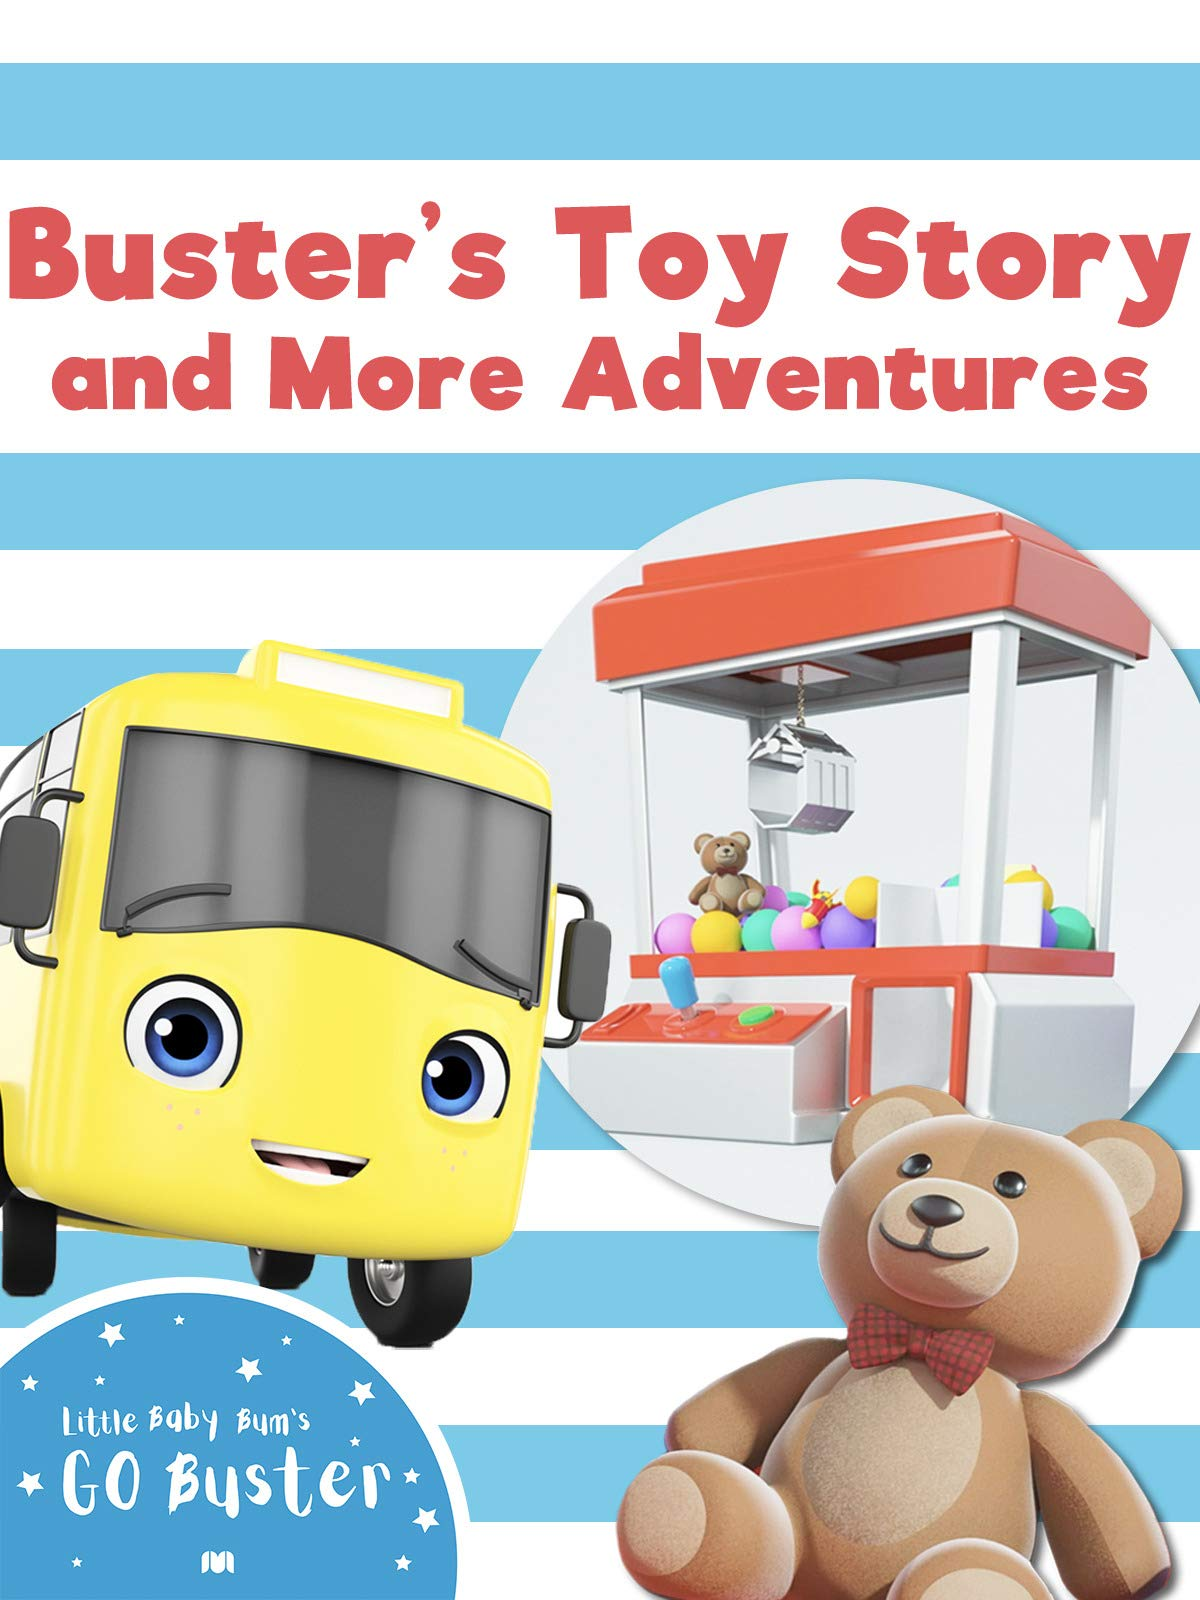 Buster's Toy Story and More Adventures - Go Buster